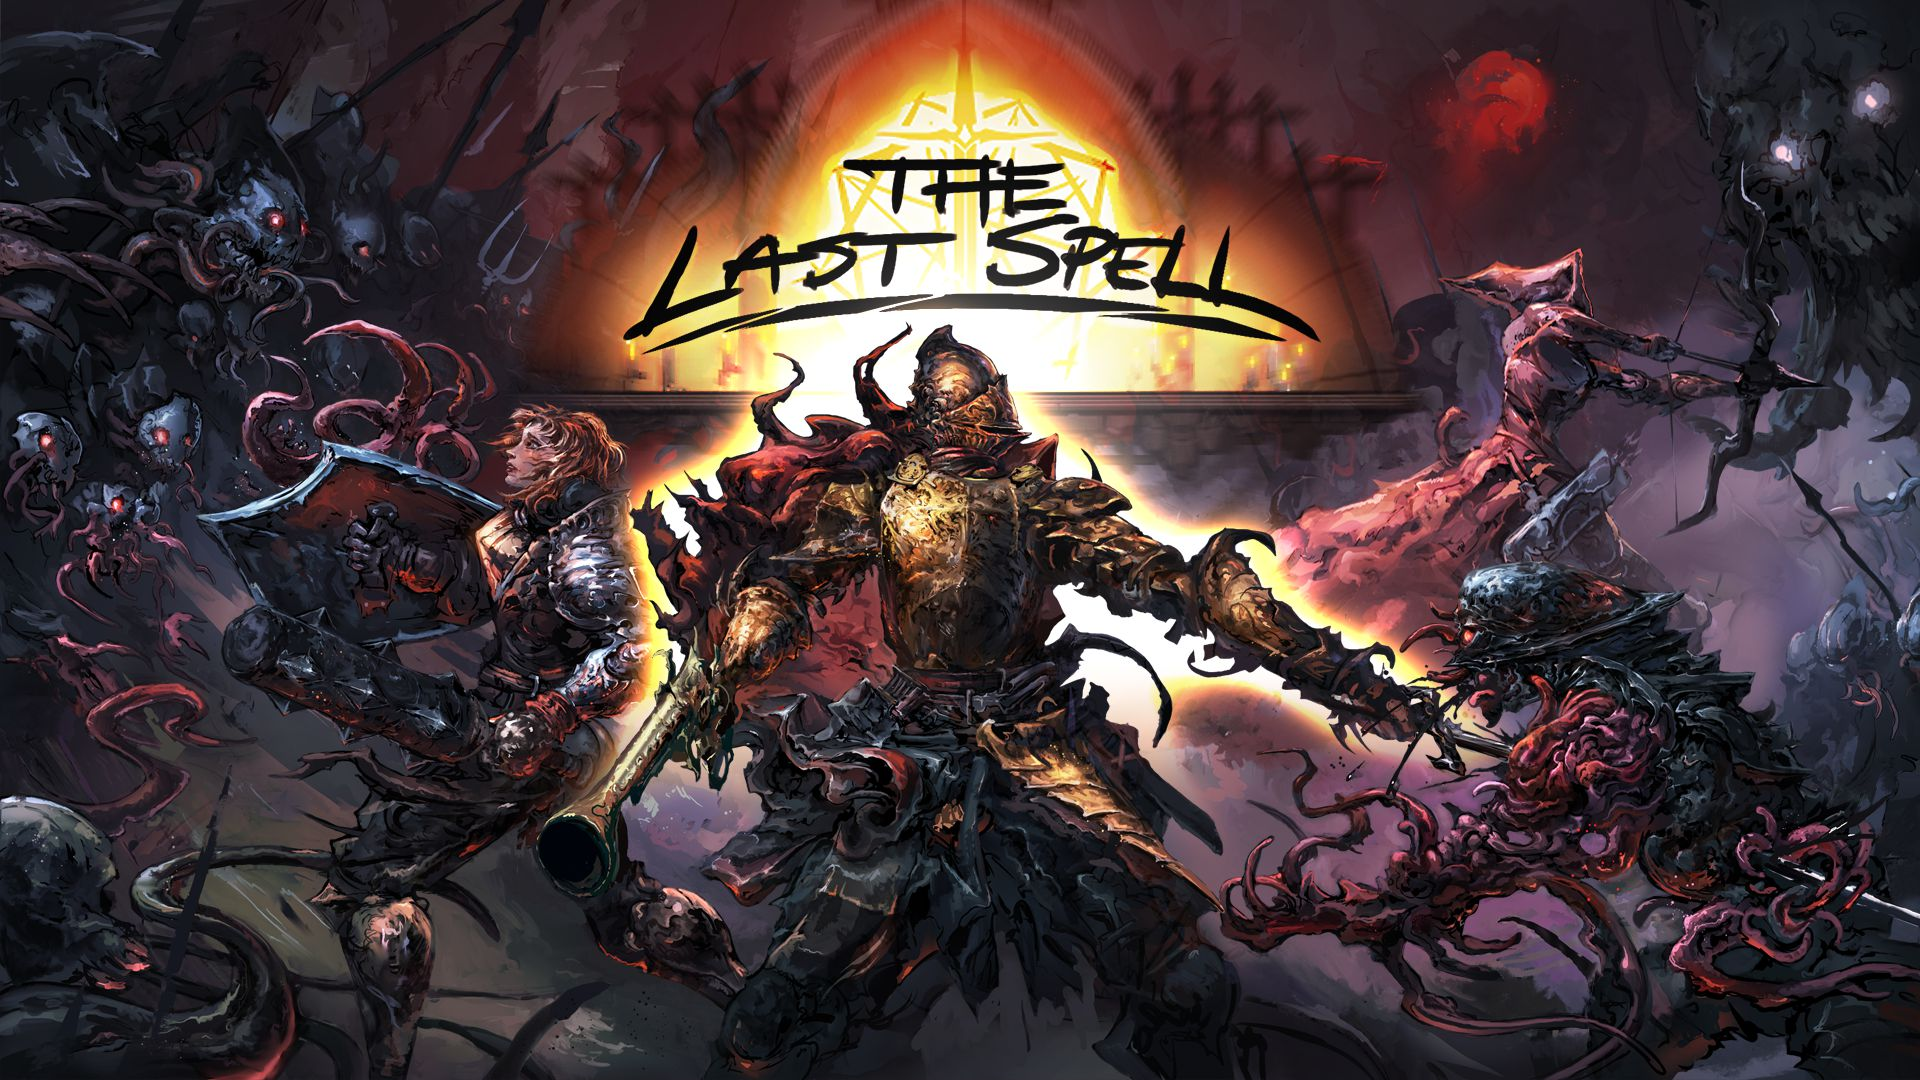 The Last Spell Principal